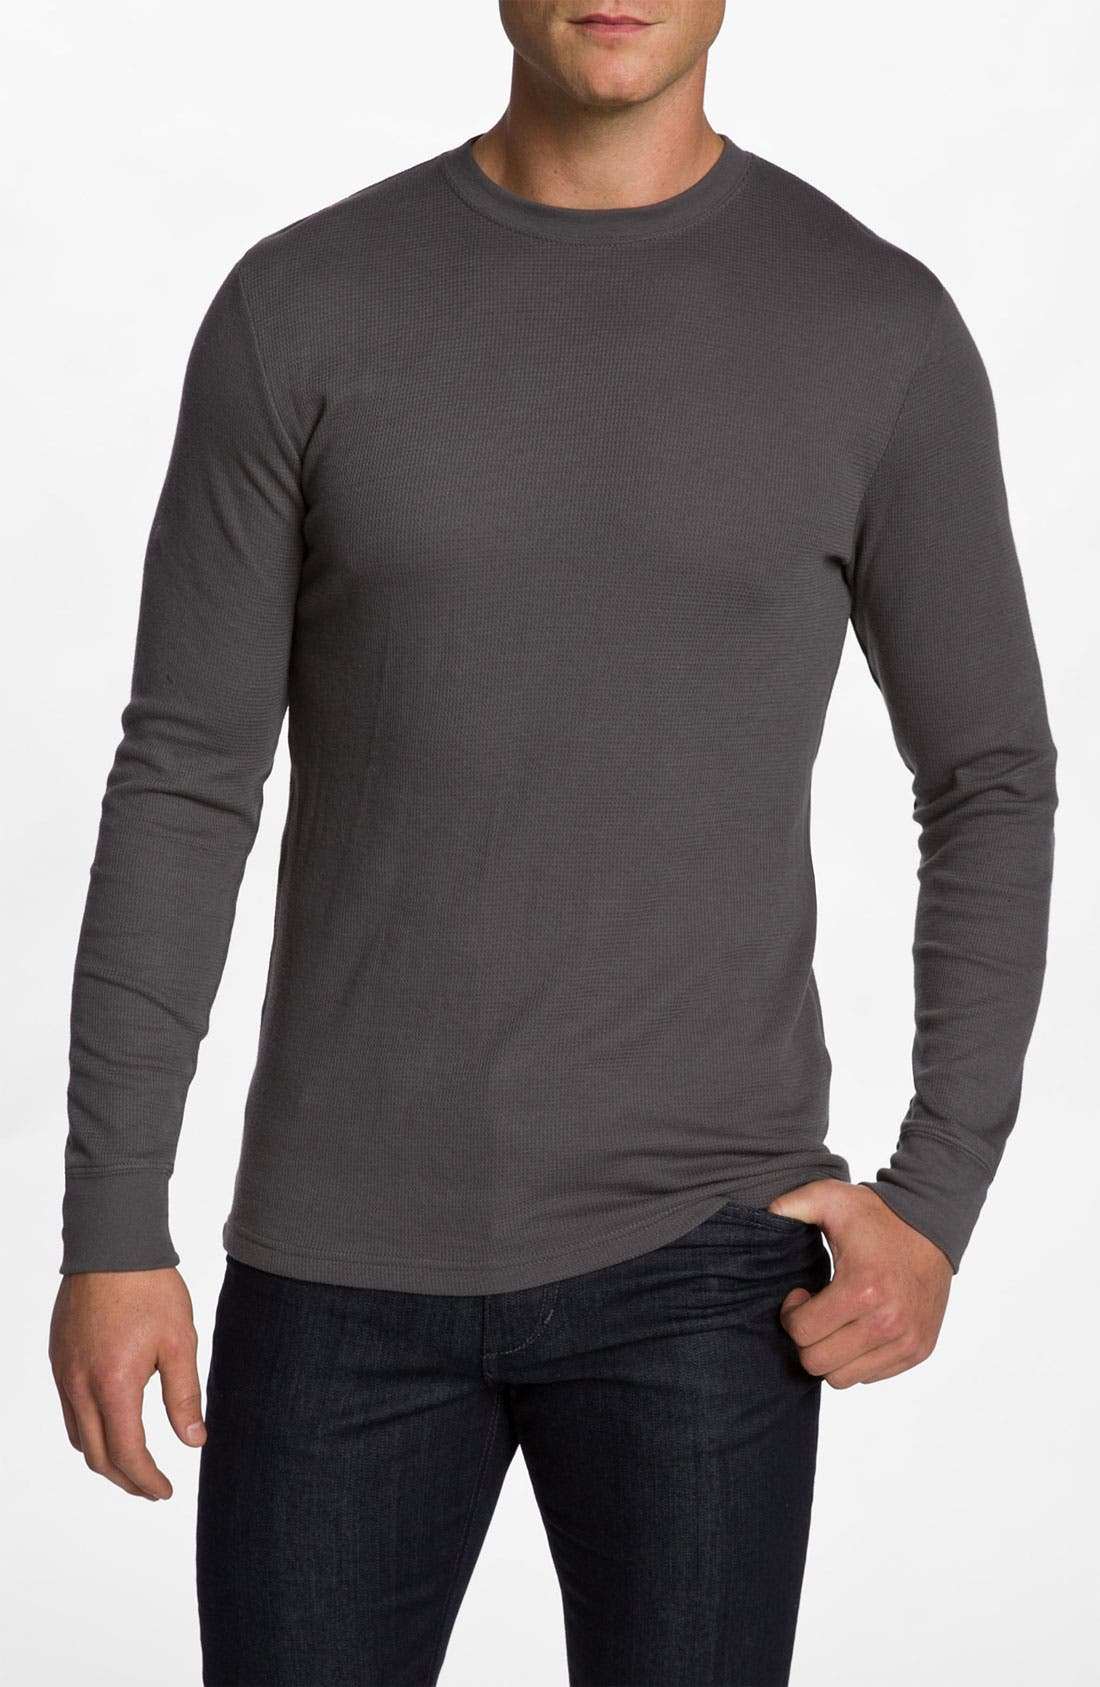 Main Image - Hurley 'Staple' Crewneck Thermal Shirt